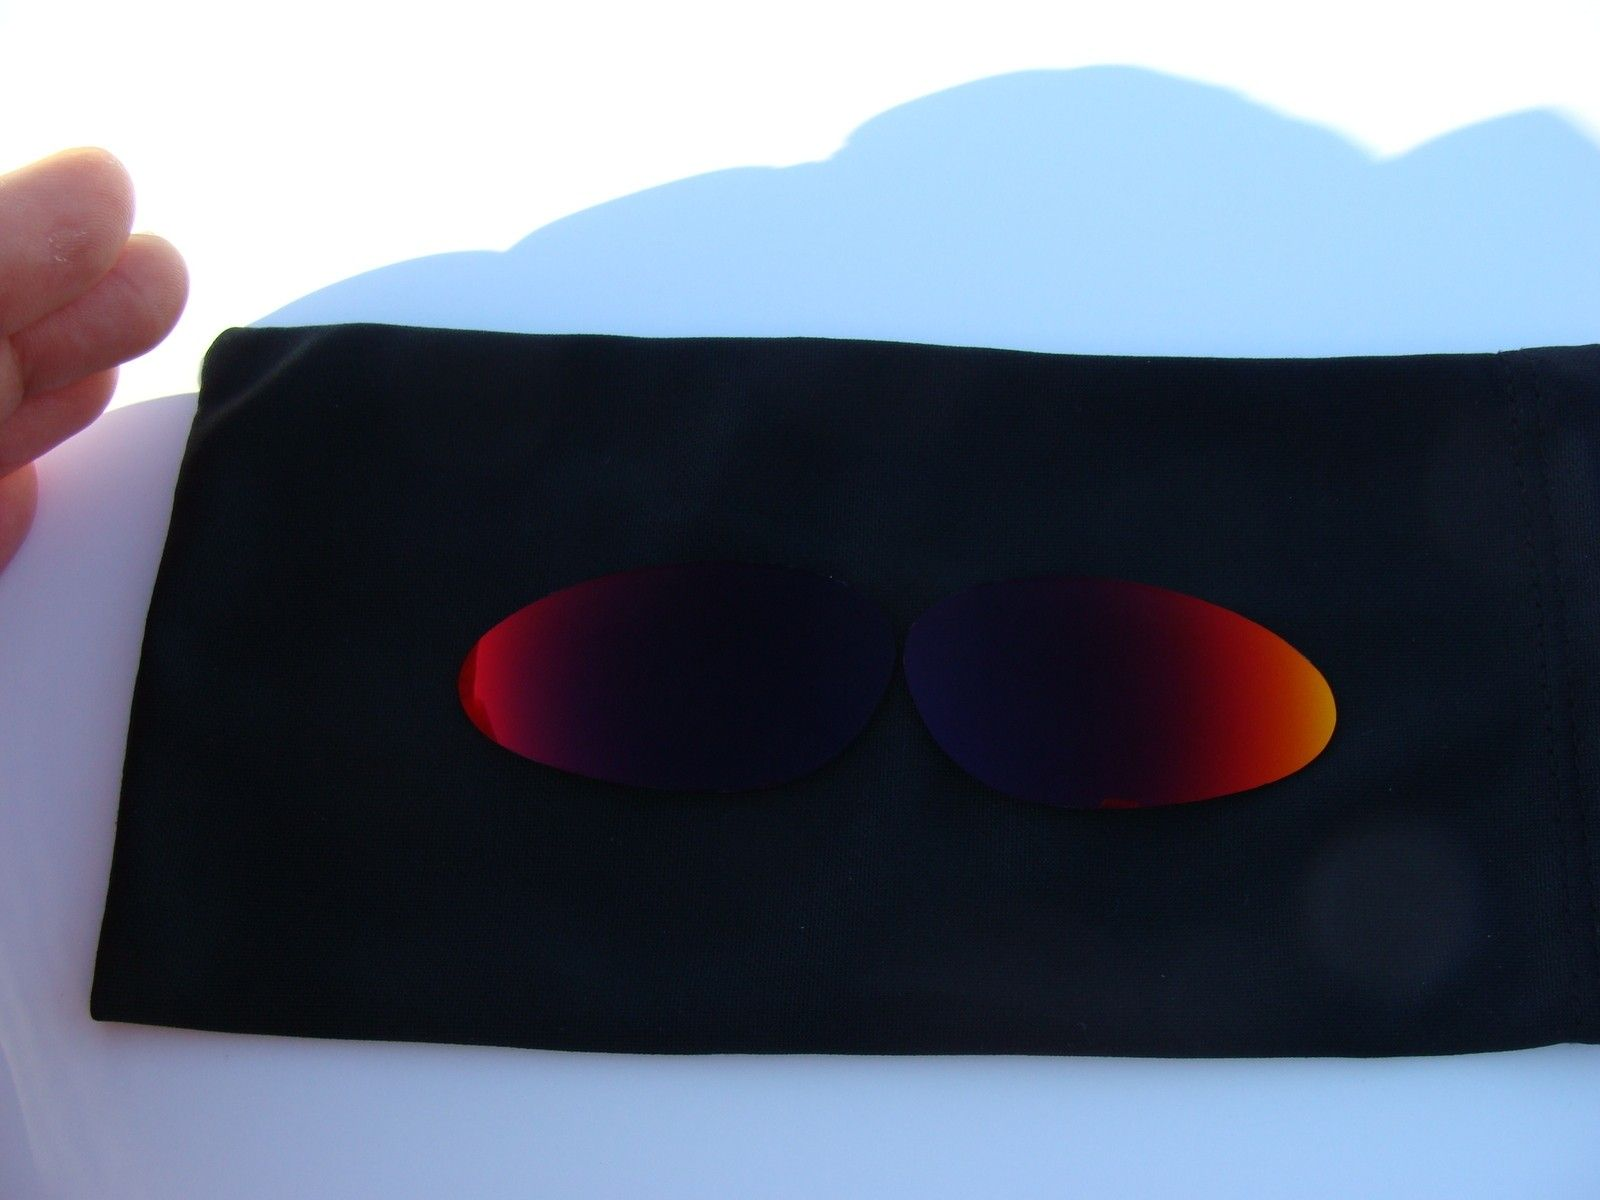 Custom Cut (Oakley) Lenses For Penny 10/011: 24k Polar, Red/Purple, Jade, Blue, Fire - DSC04603.JPG